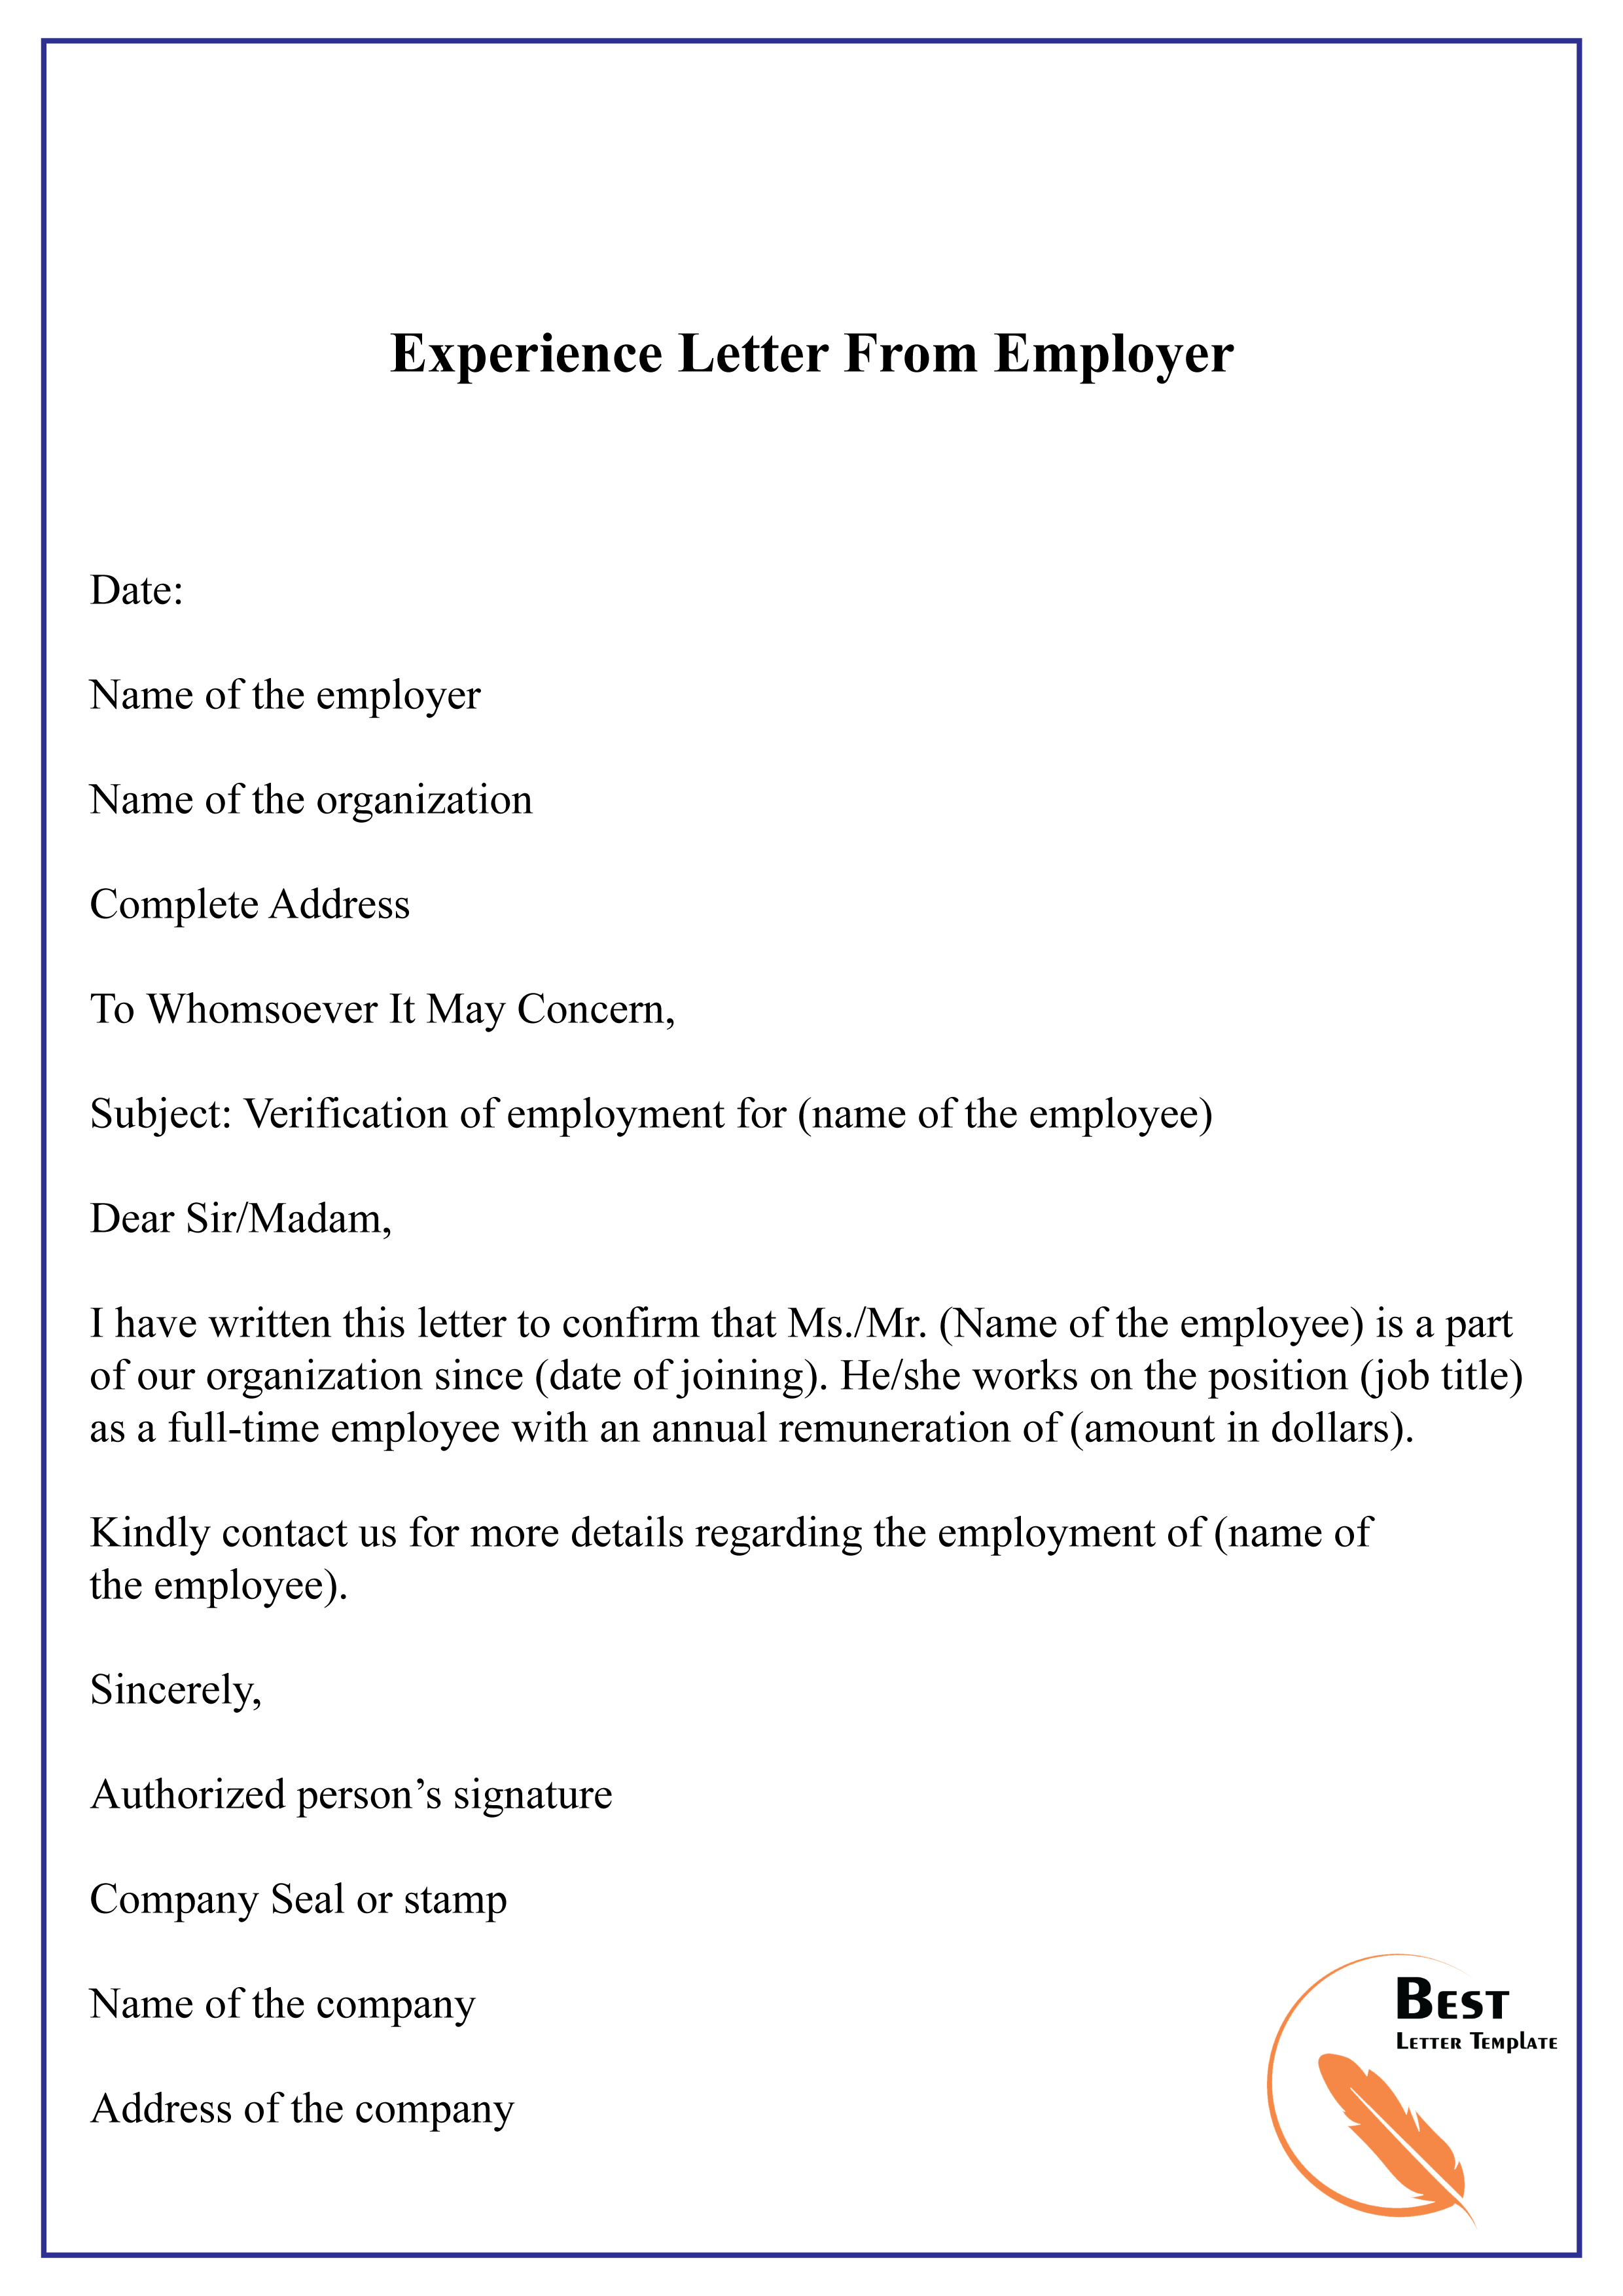 Previous Employer Job Experience Letter Sample From Employer